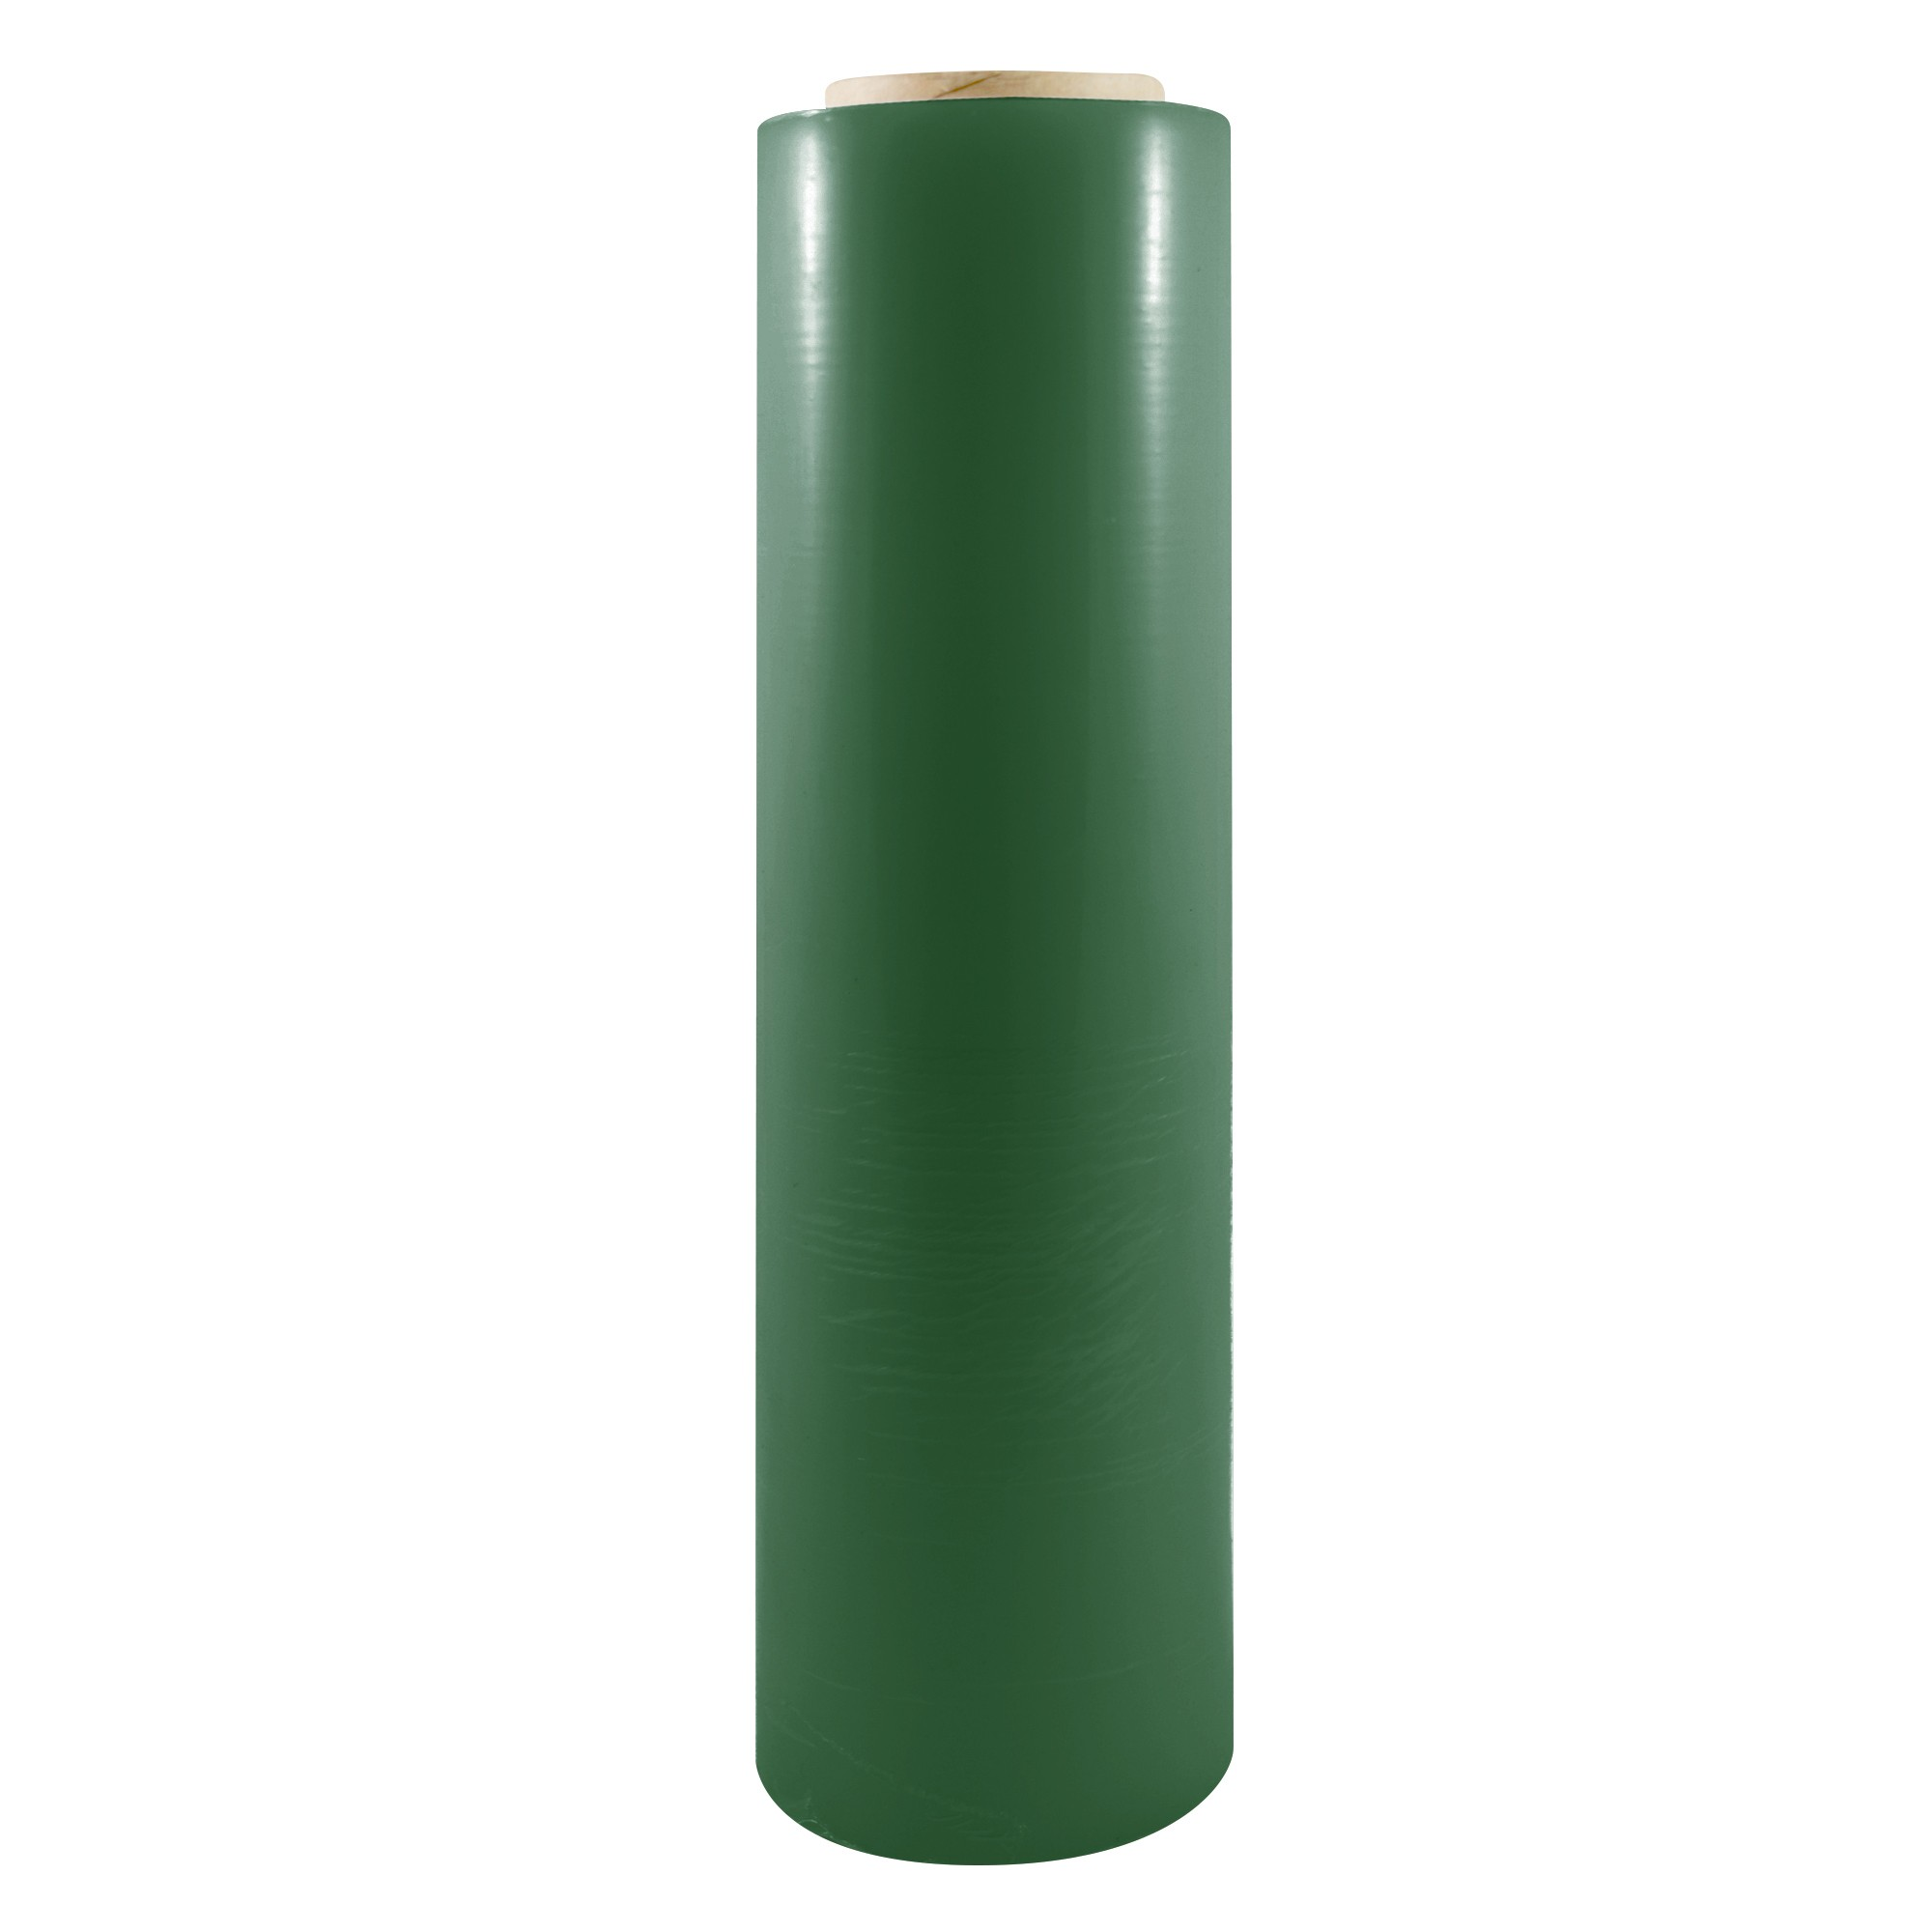 "TOTALPACK® 18"" x 1000' 85 Gauge, 4 Rolls. Gauge Blown Stretch Green Film"